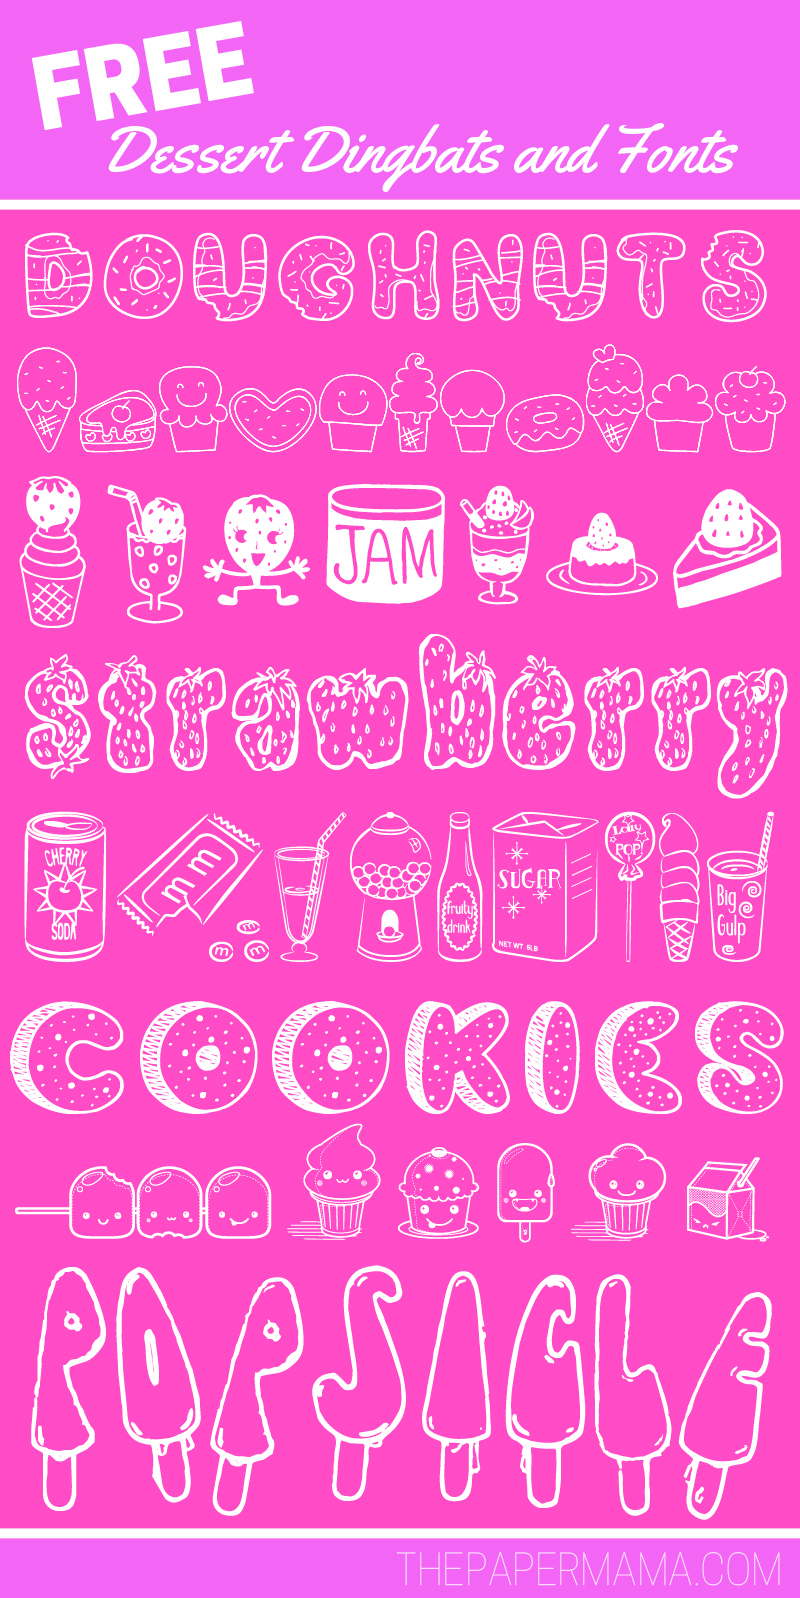 My Favorite Free Dessert Dingbats and Fonts - THEPAPERMAMA.COM